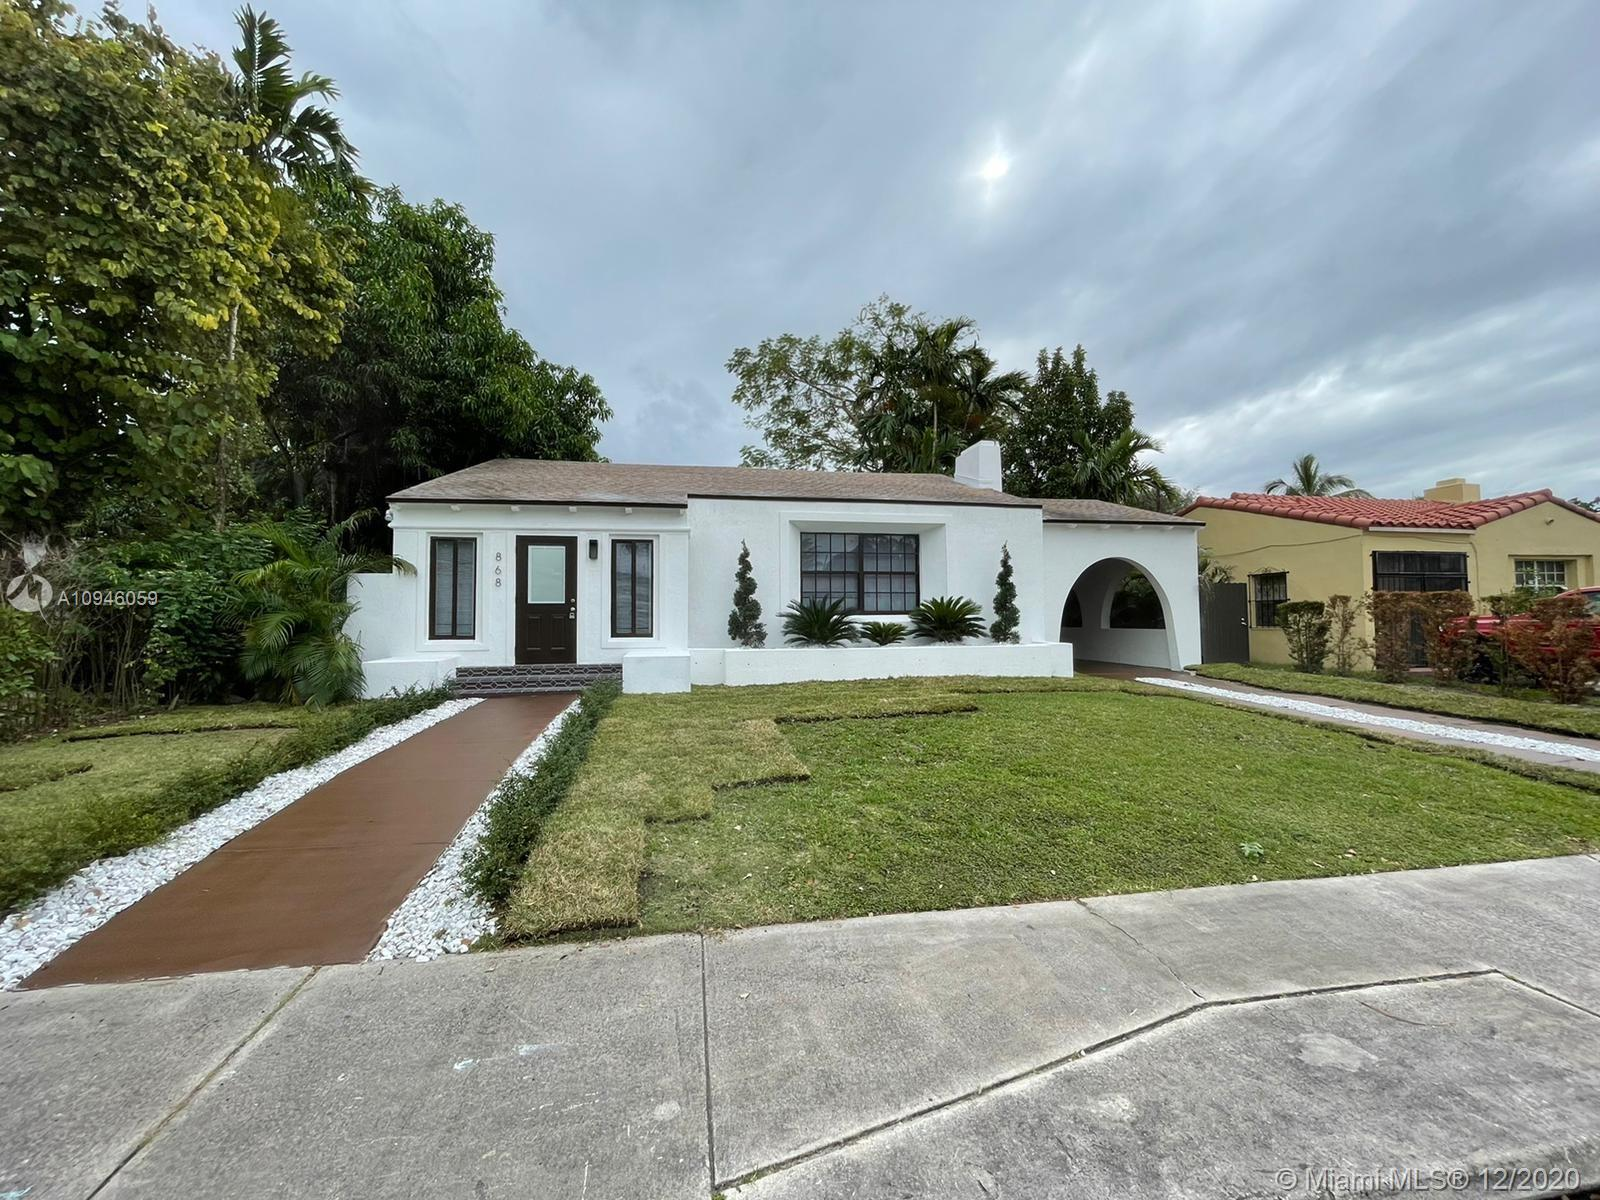 868 NE 82nd St, Miami, Florida 33138, 3 Bedrooms Bedrooms, ,2 BathroomsBathrooms,Residential,For Sale,868 NE 82nd St,A10946059